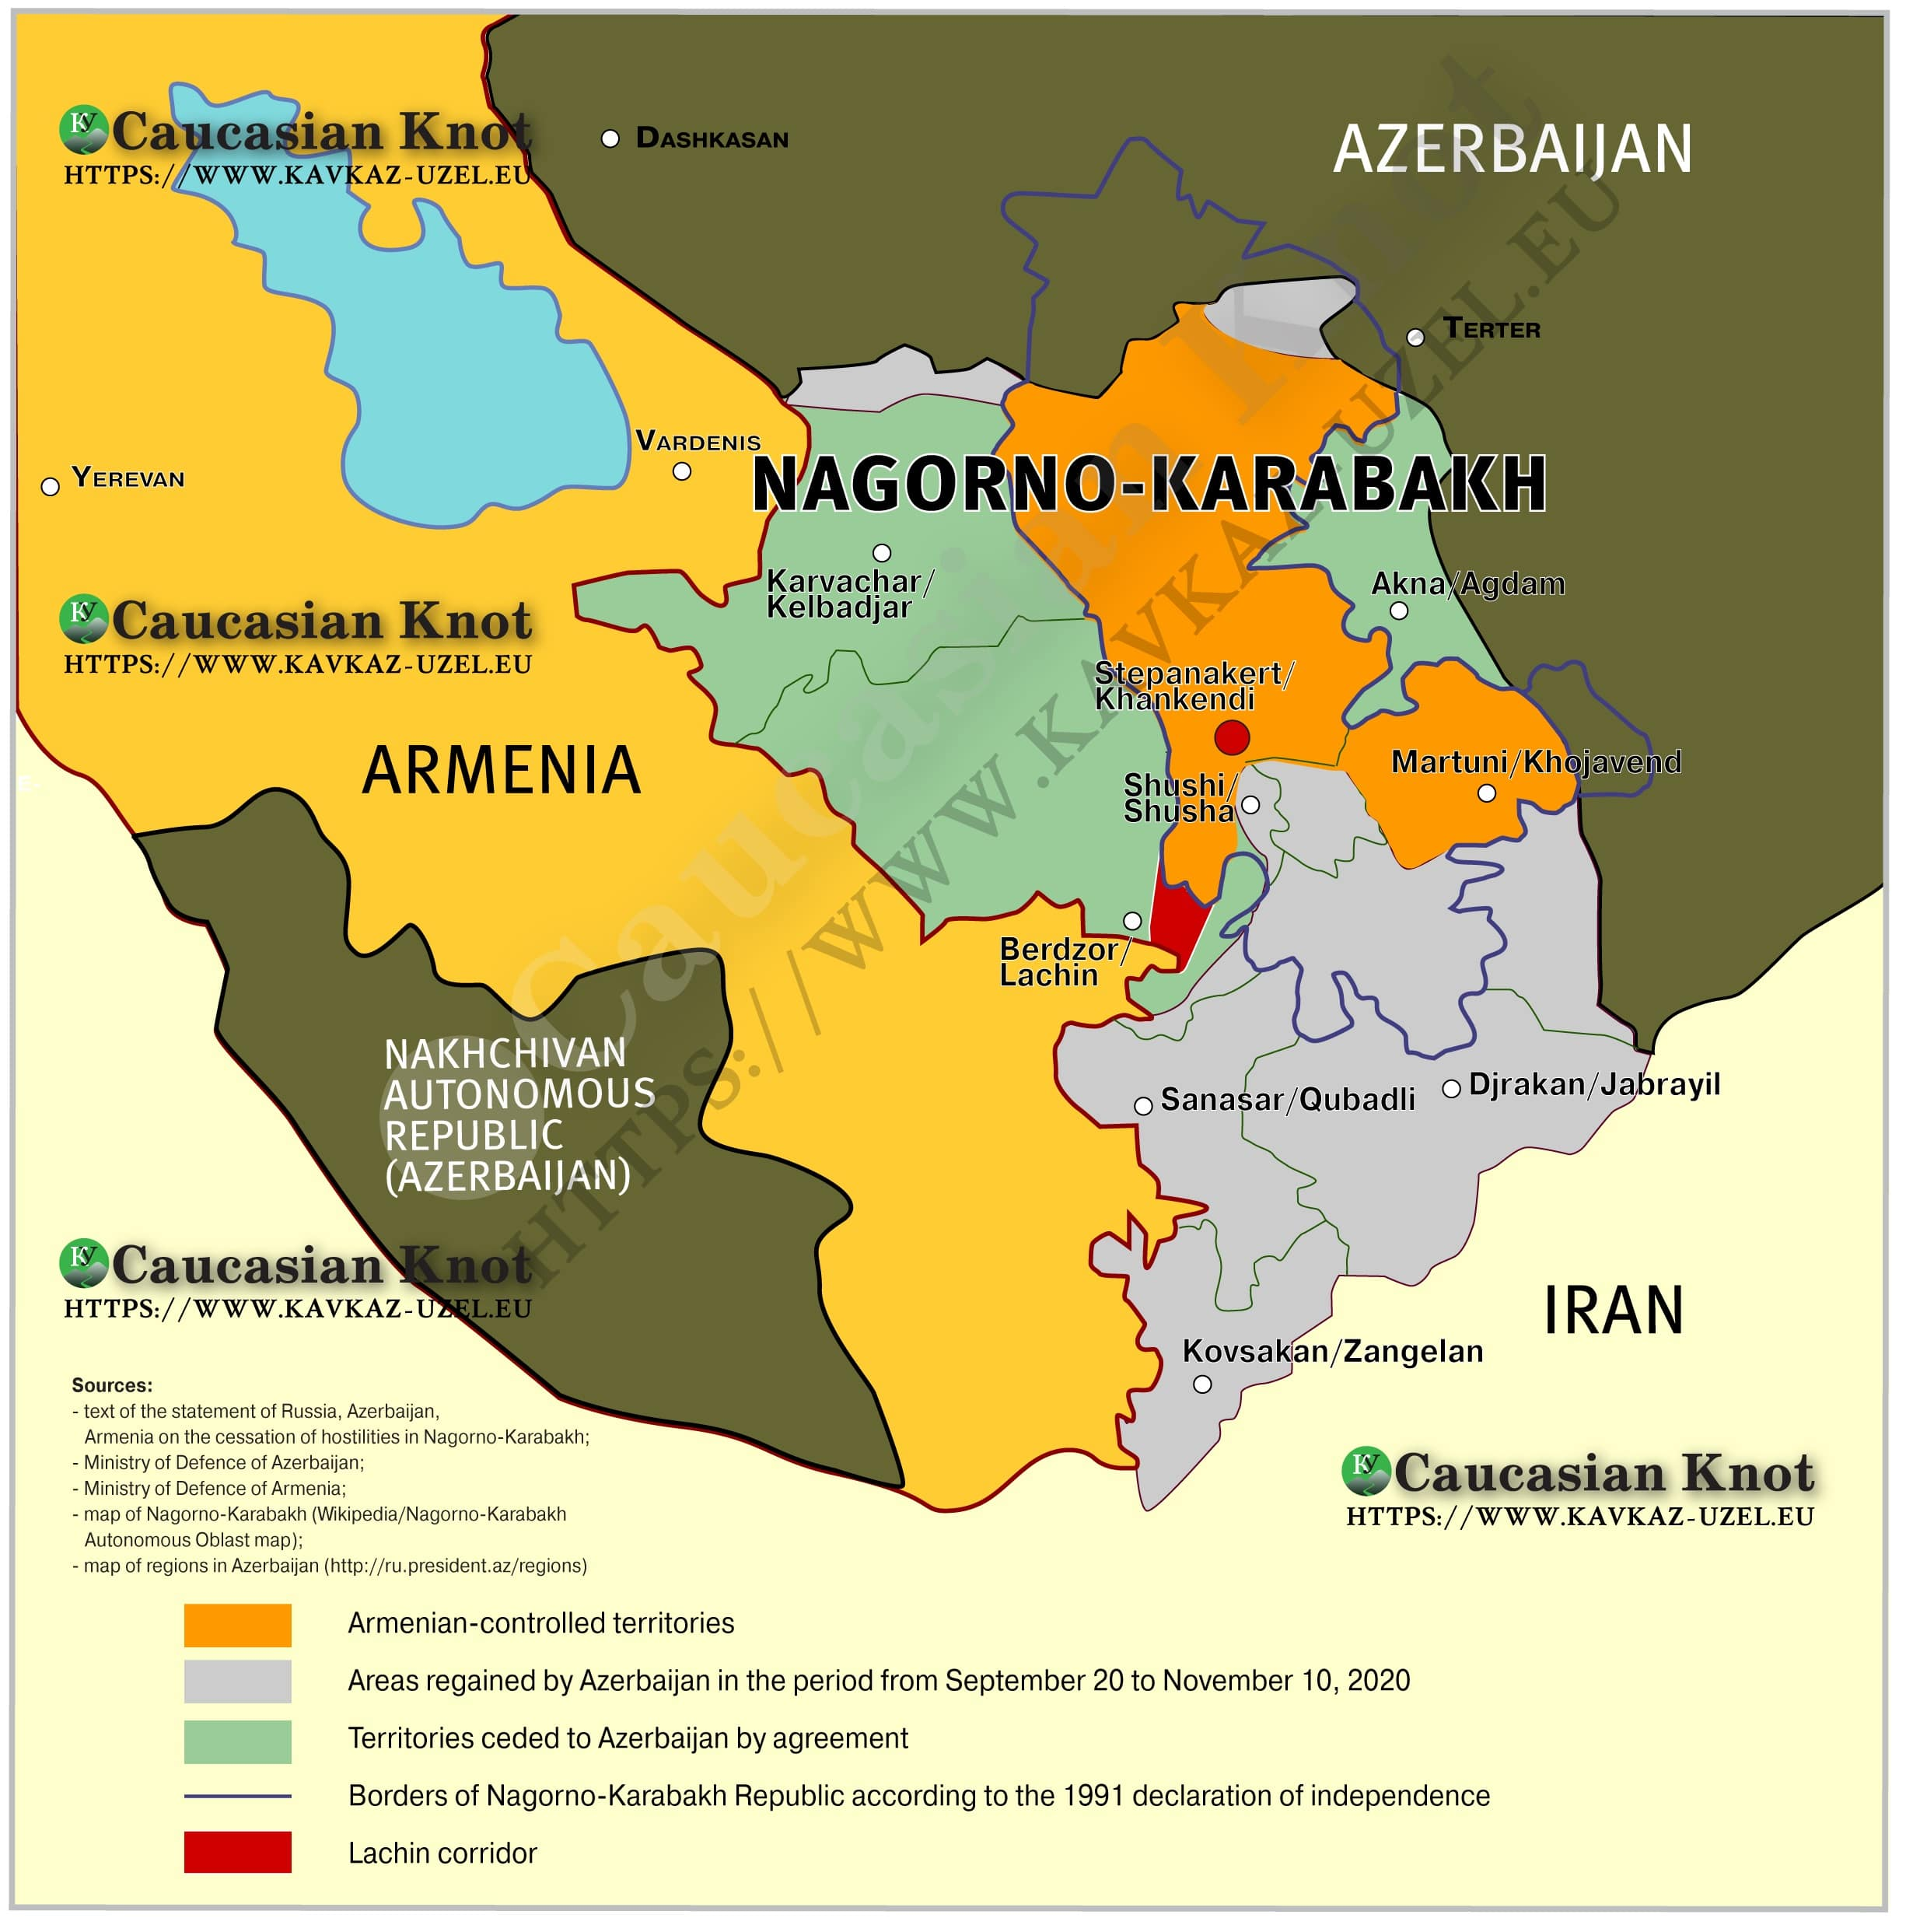 Map drawn by the Caucasian Knot based on the agreements between Armenia, Azerbaijan and Russia